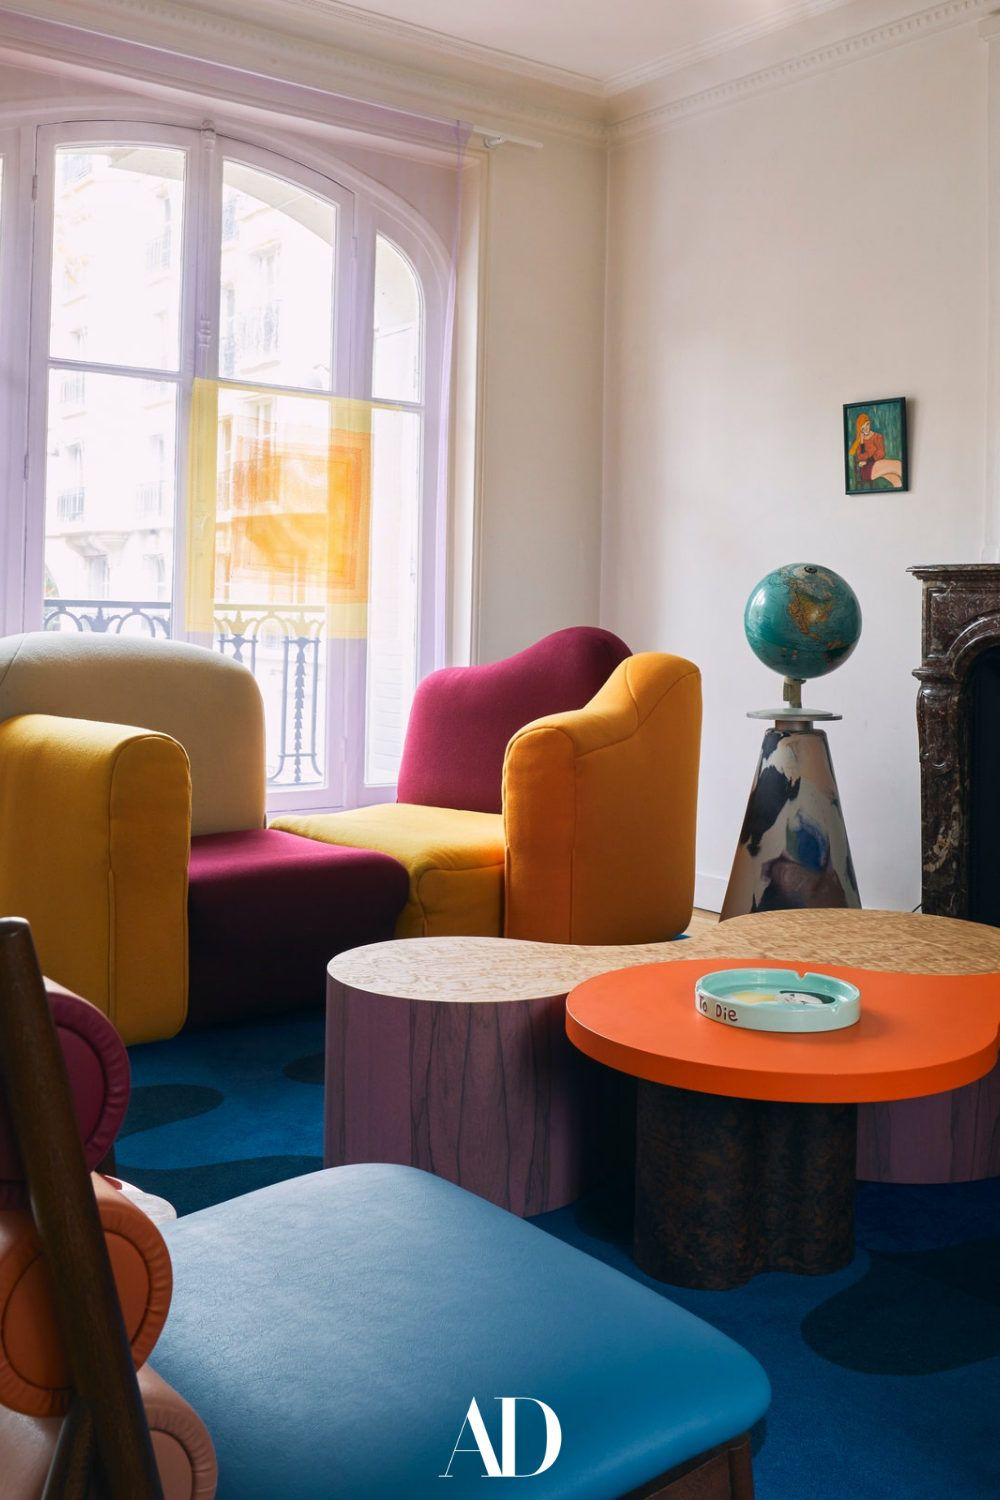 Visit the colorful and open apartment of a young P